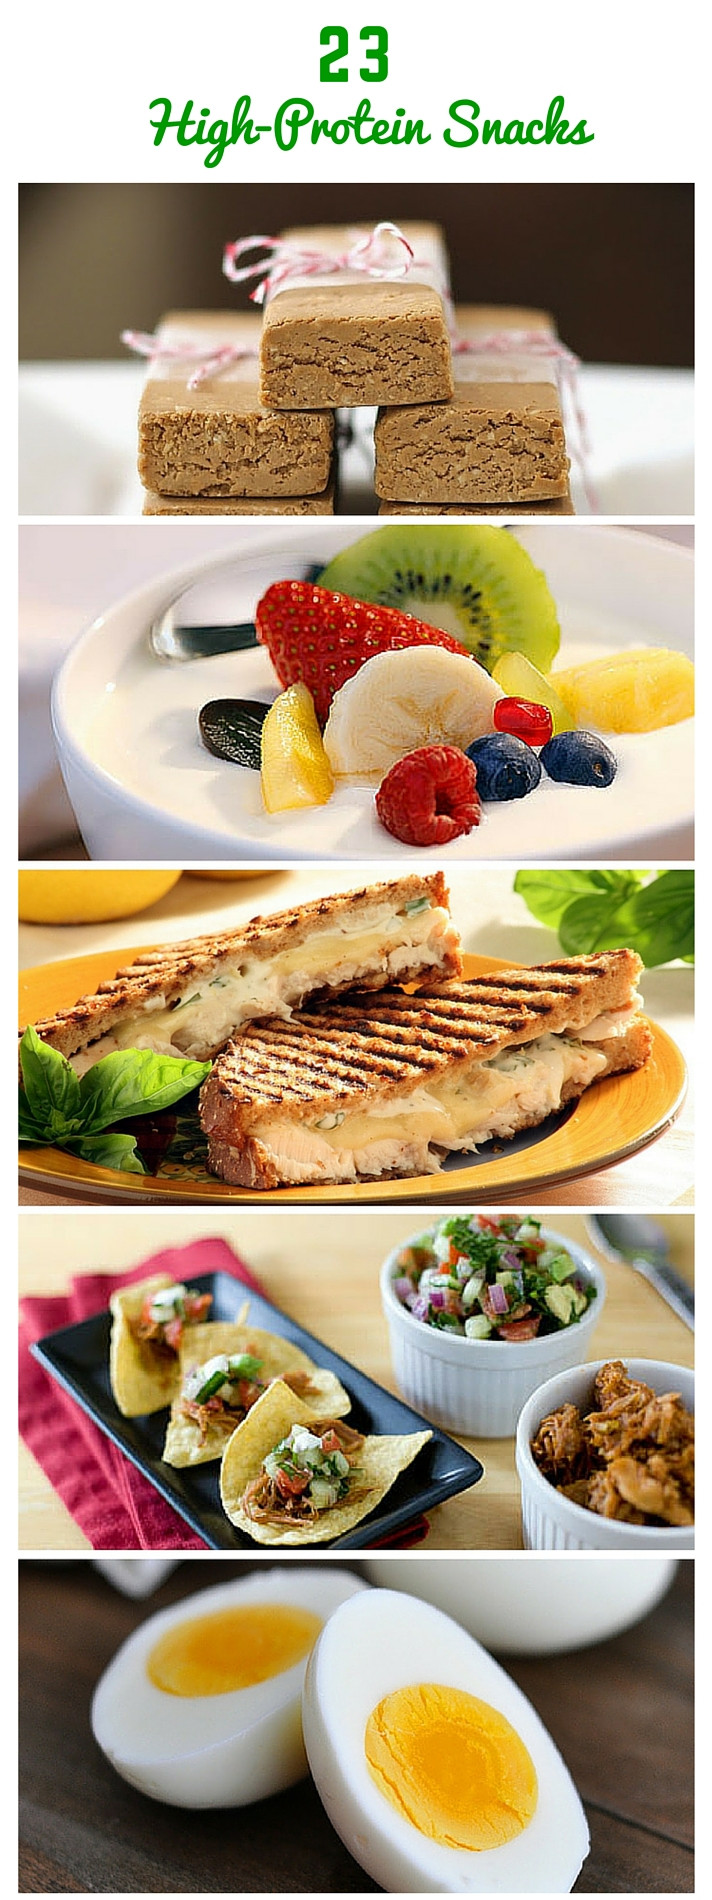 Healthy Snacks With Protein  23 Healthy and Portable High Protein Snacks Daily Fit Hit